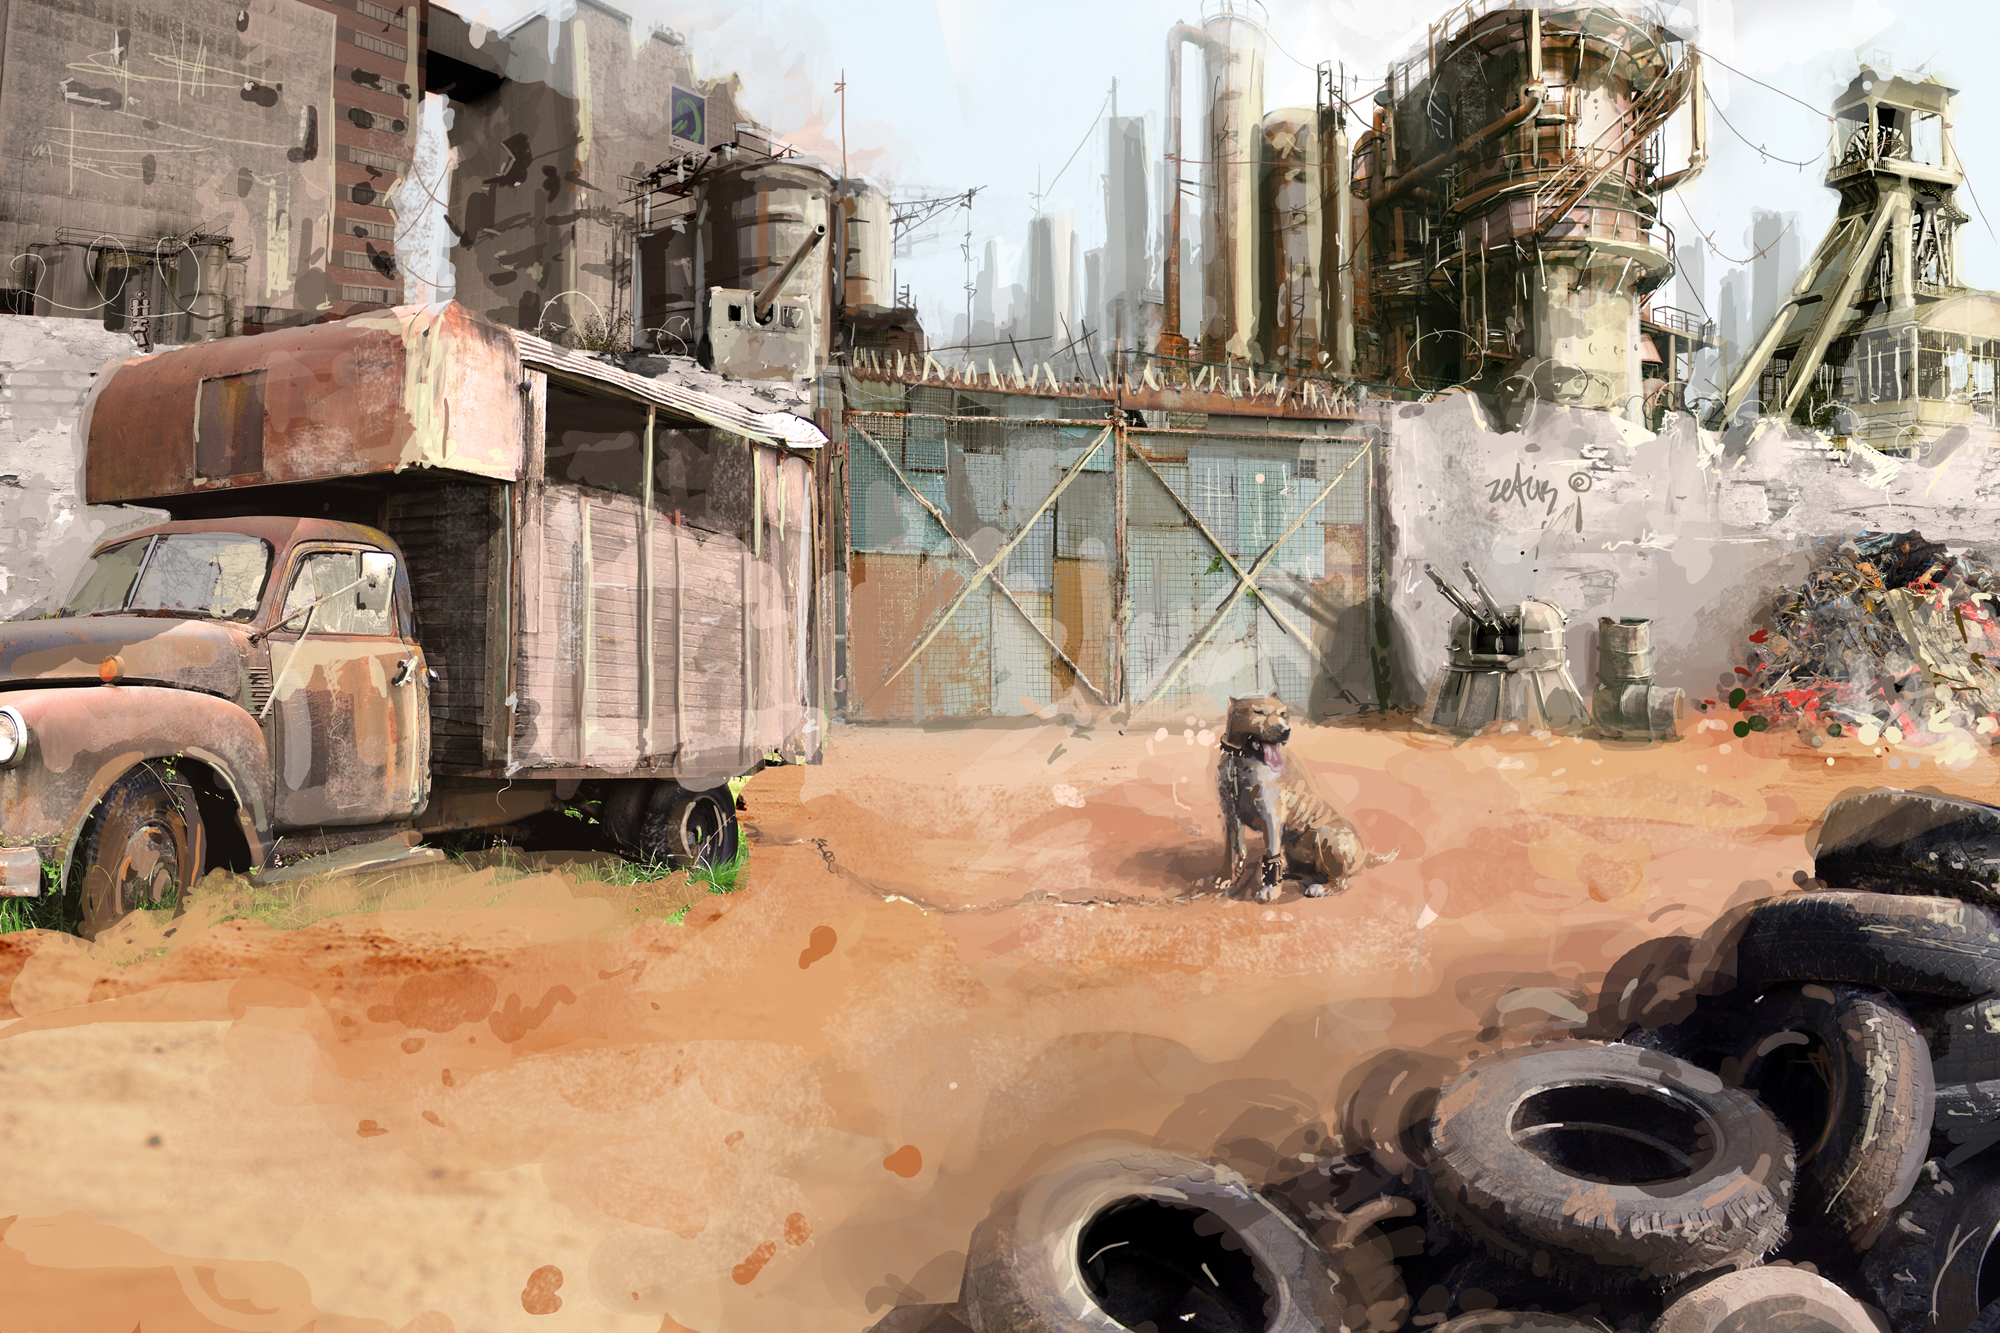 2000x1333 796 desert 2d illustration post apocalyptic dog picture image digital art